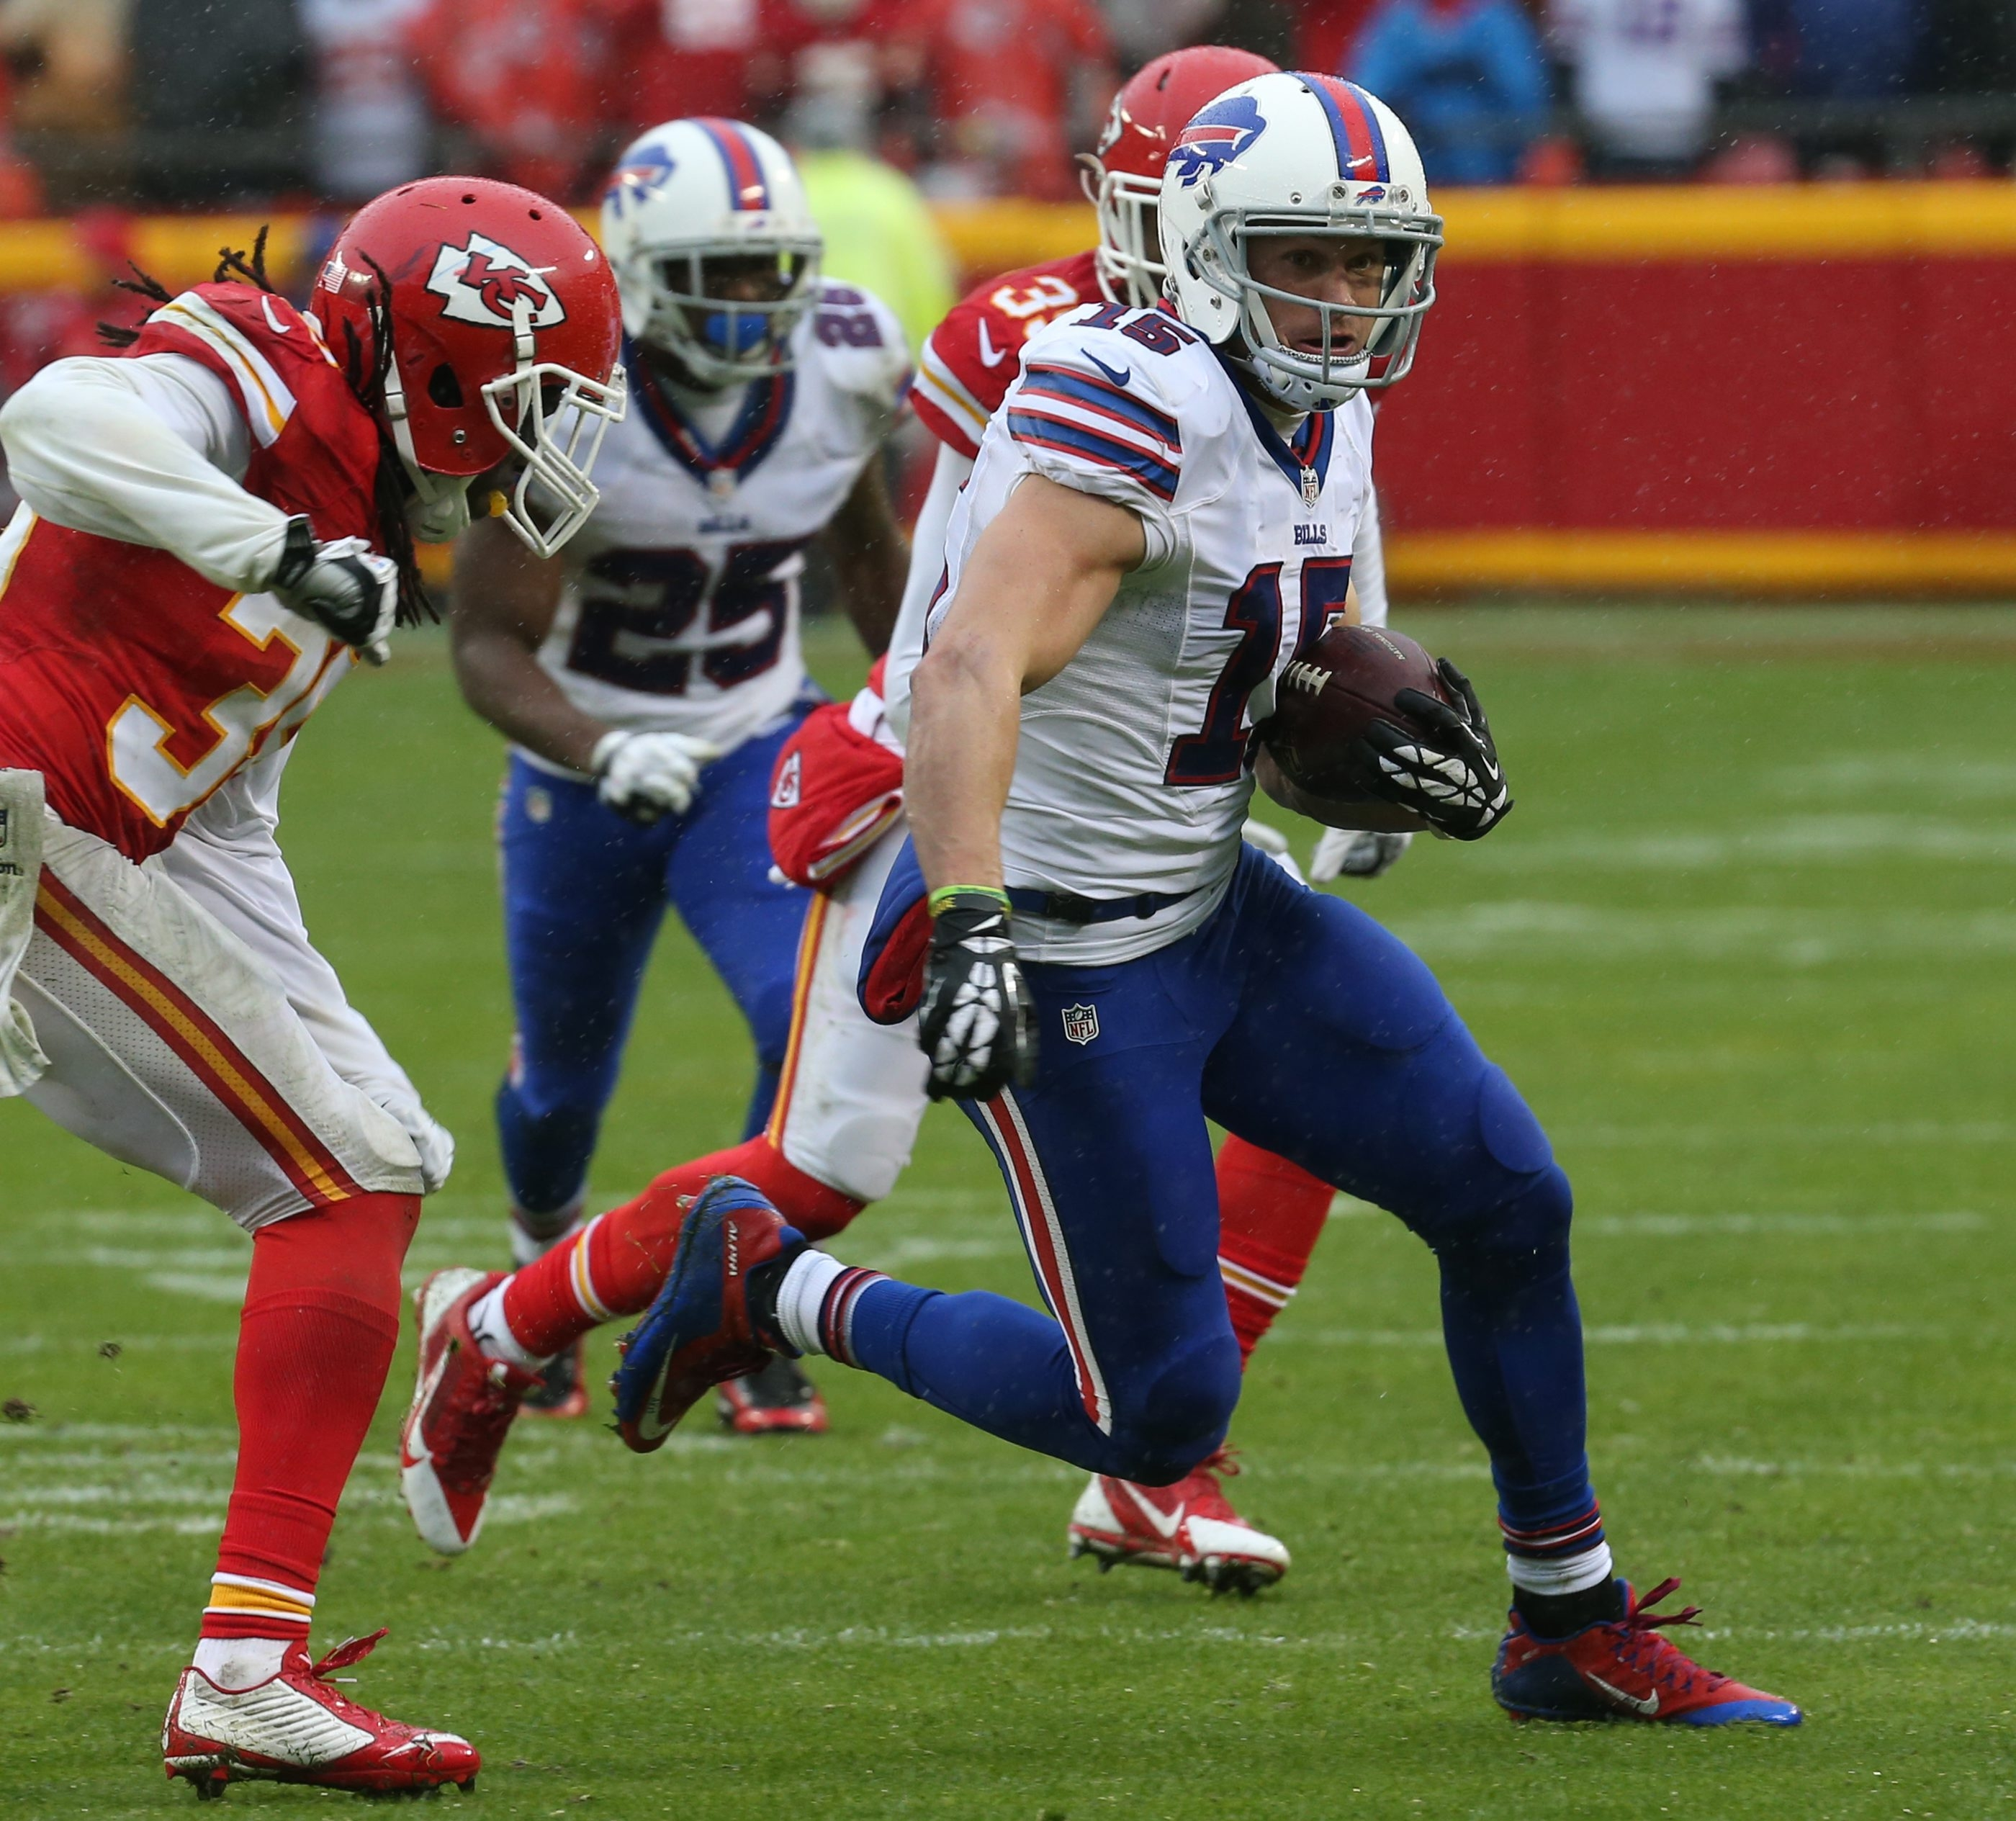 Wide receiver Chris Hogan had 77 catches for 876 yards and six touchdowns over the past two seasons with the Bills.